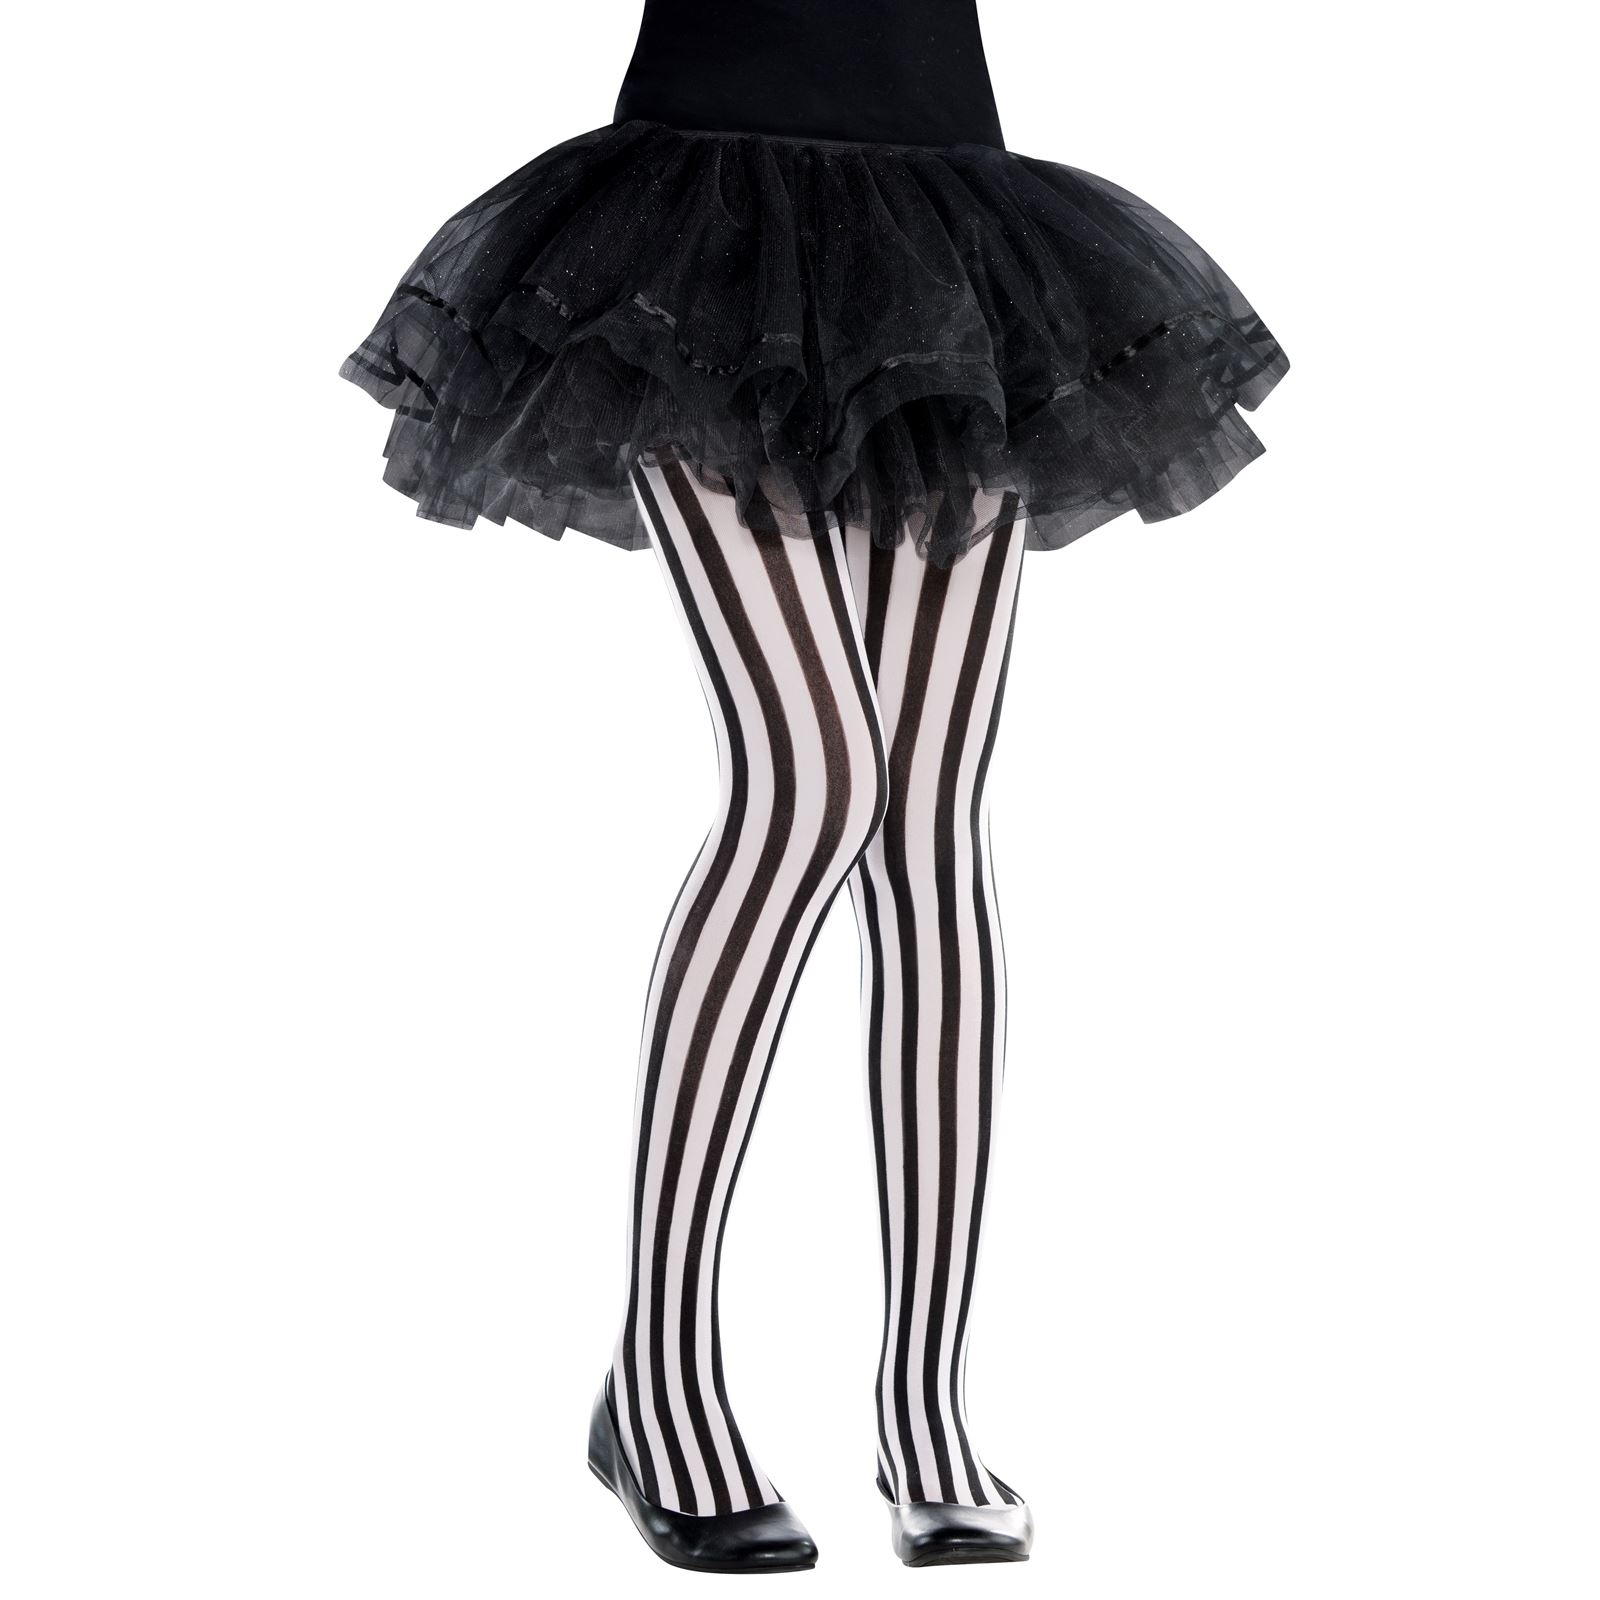 240f614afd5c Girls Vertical Striped Tights 6-8 Years Black White Halloween Party ...